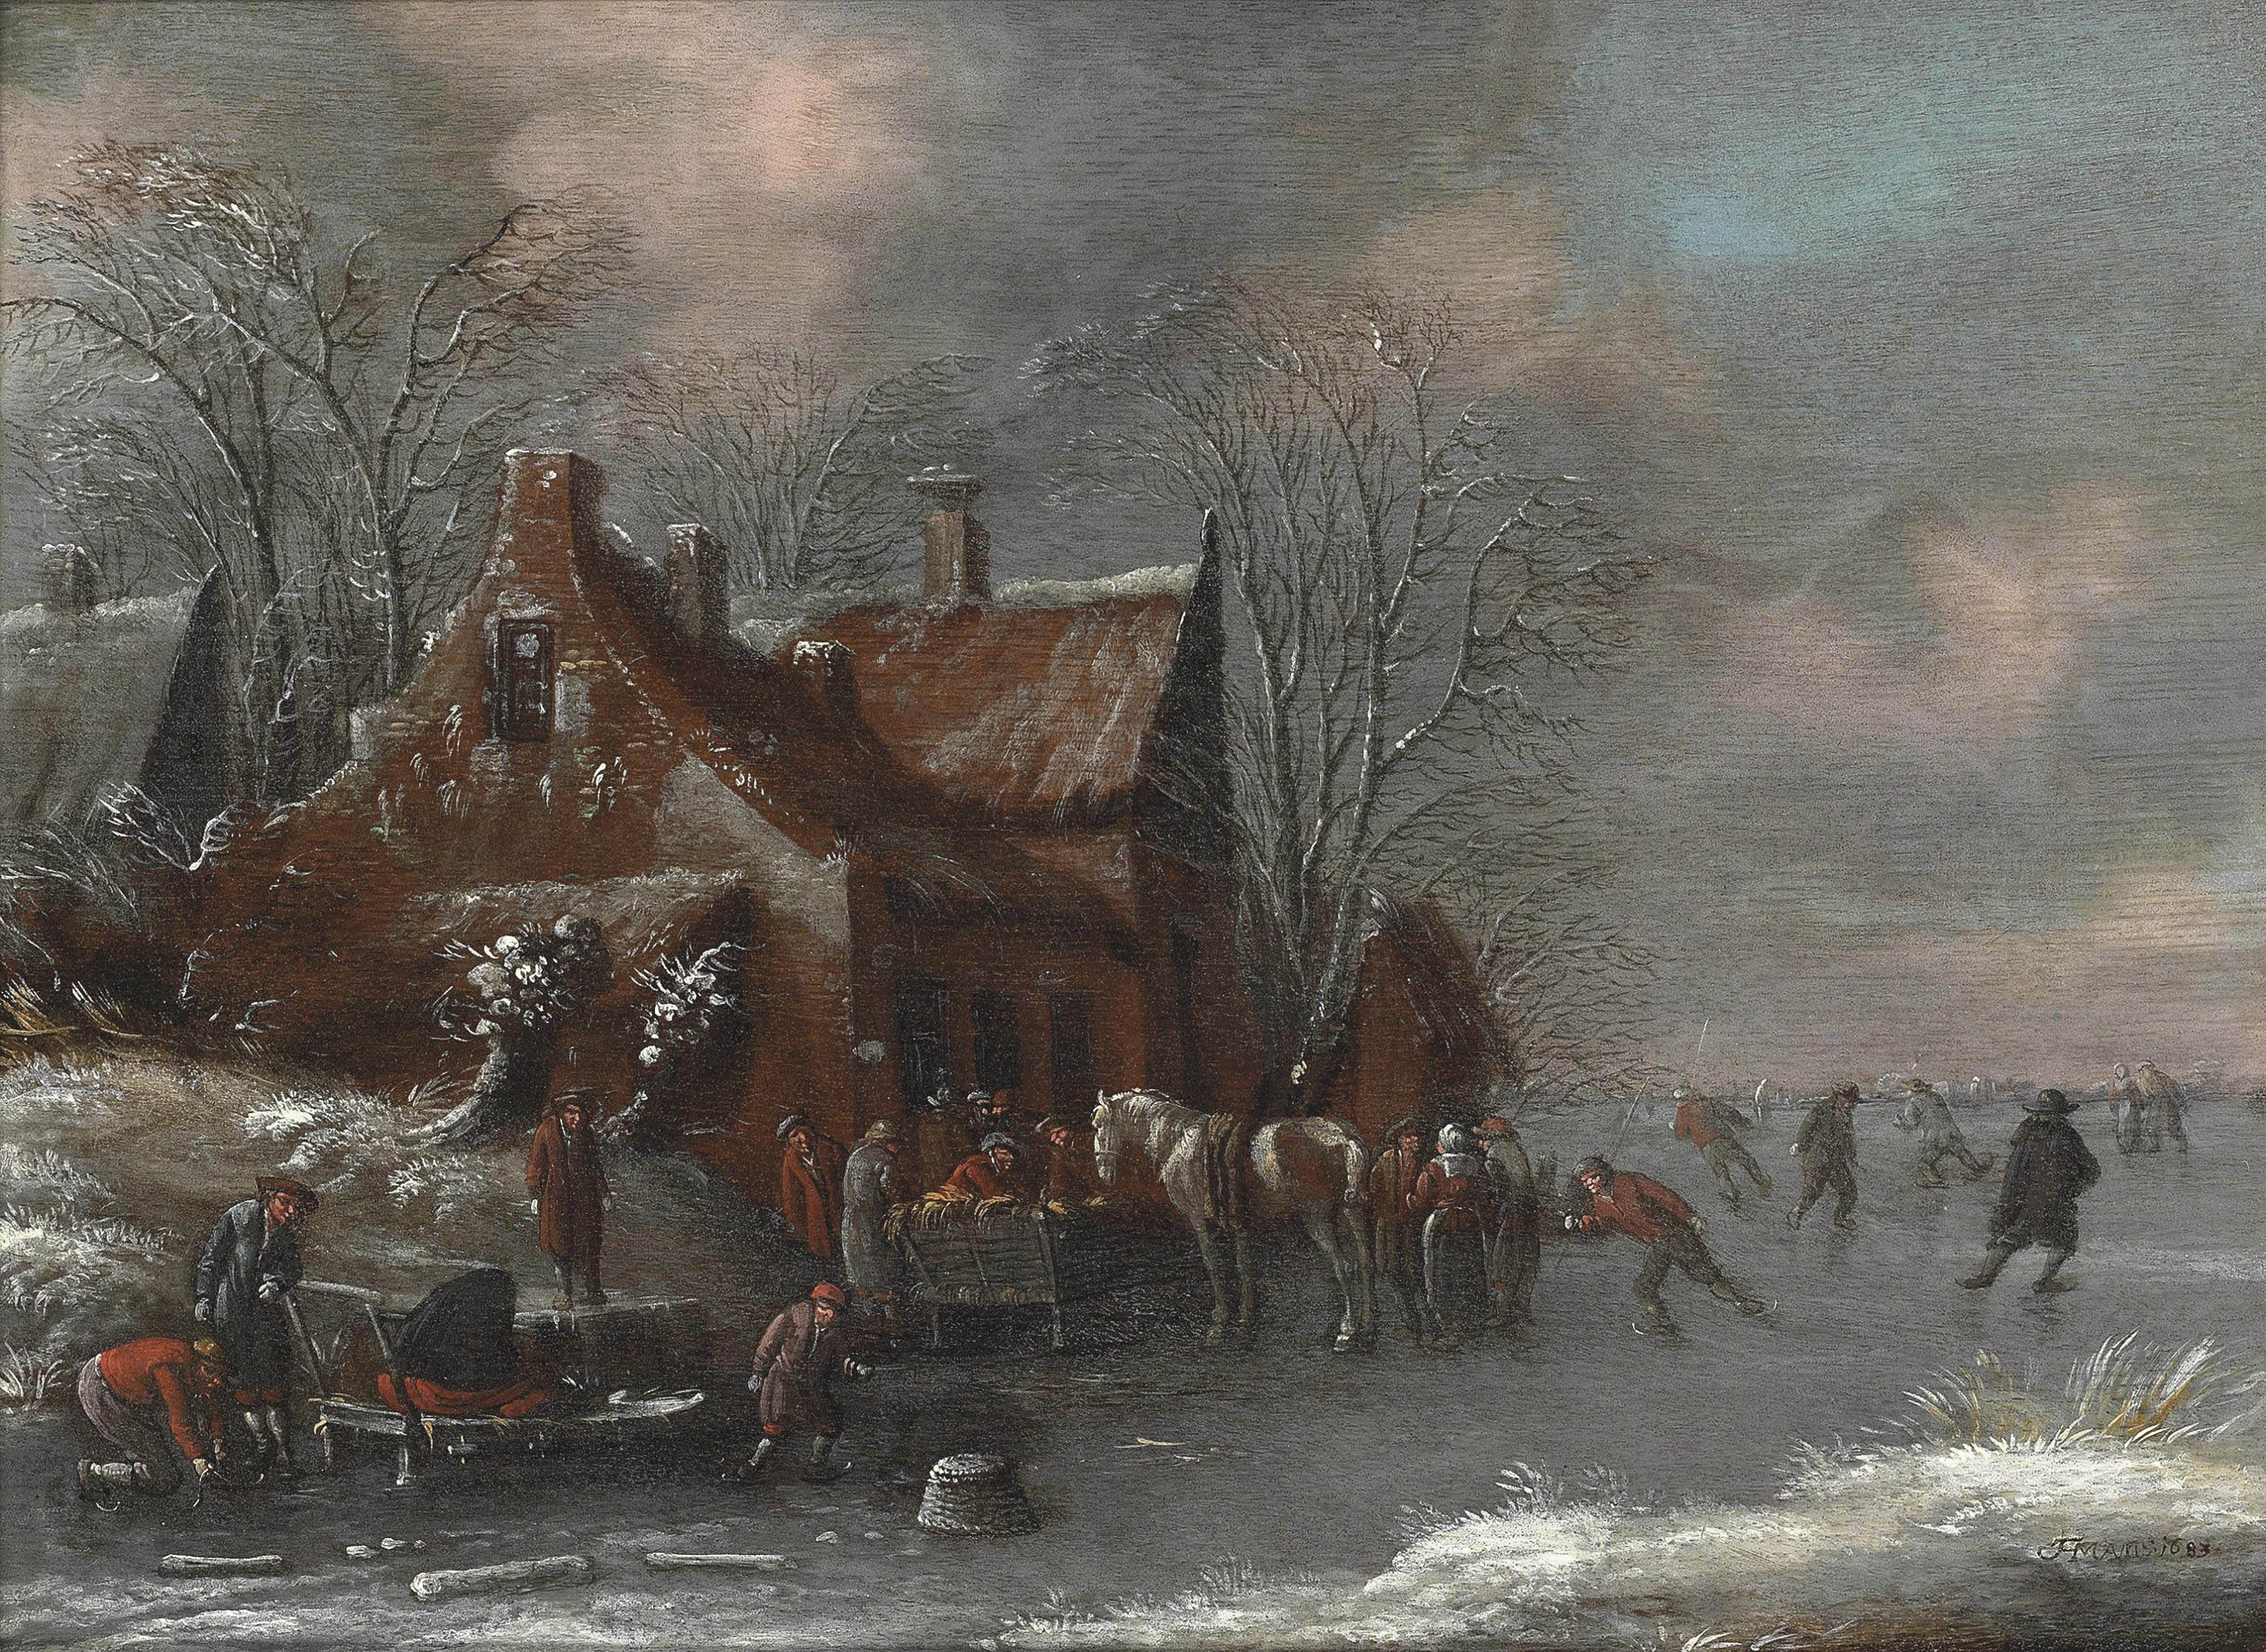 A winter landscape with figures skating on a frozen river by a village